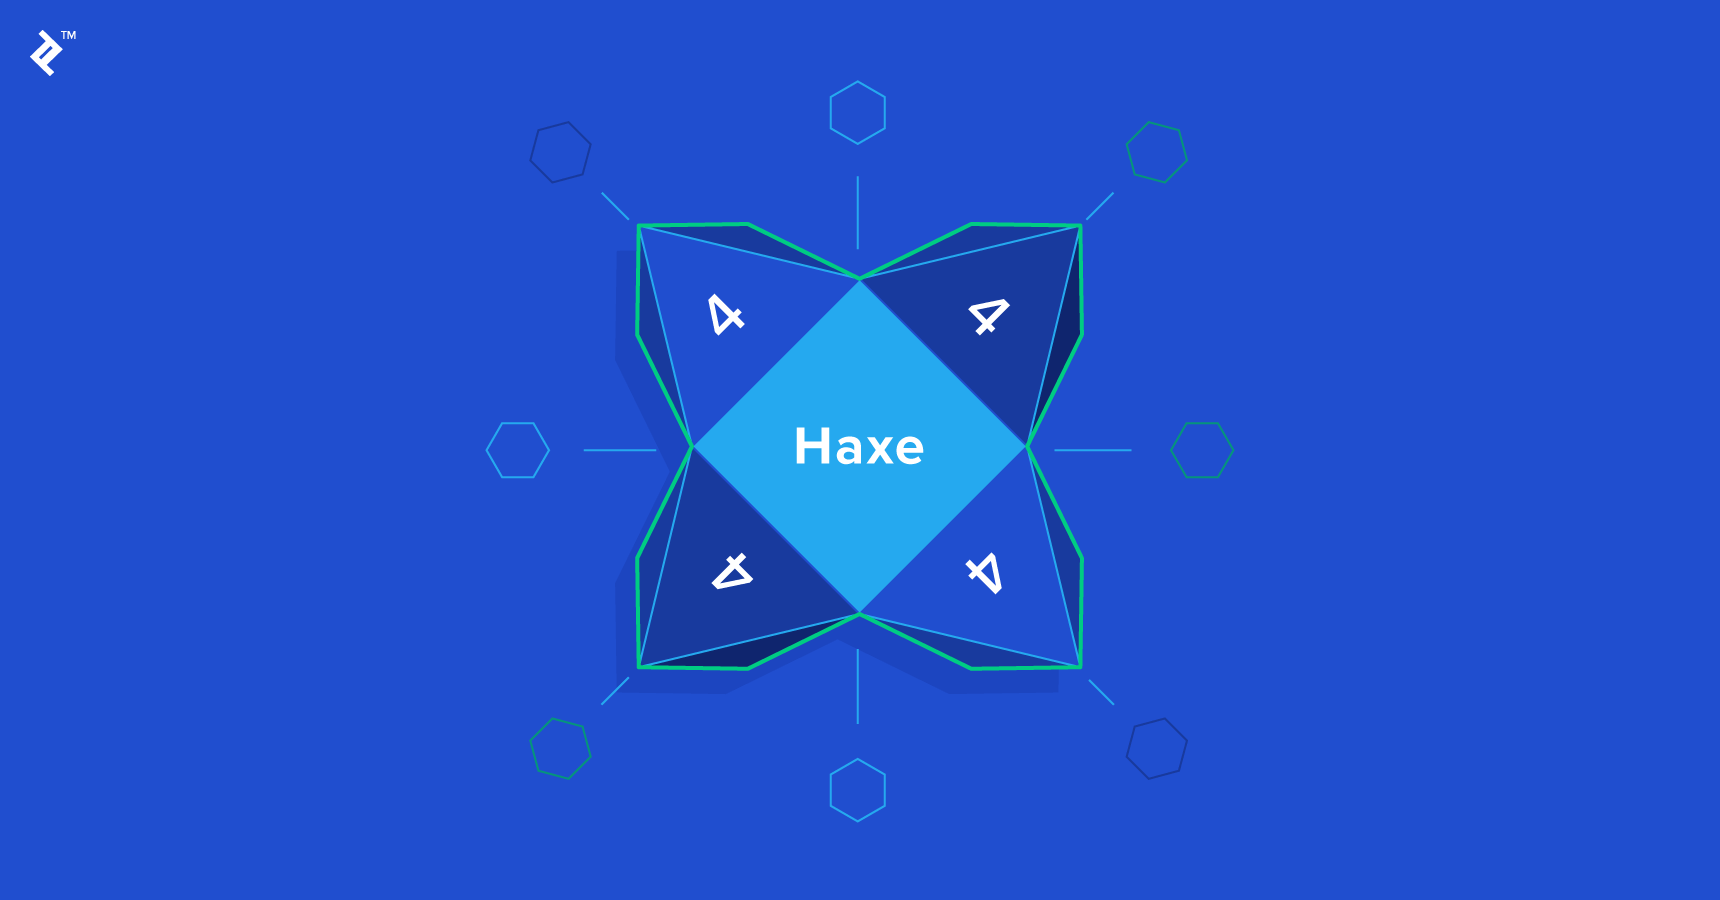 Haxe Review: Haxe 4 Features and Strengths